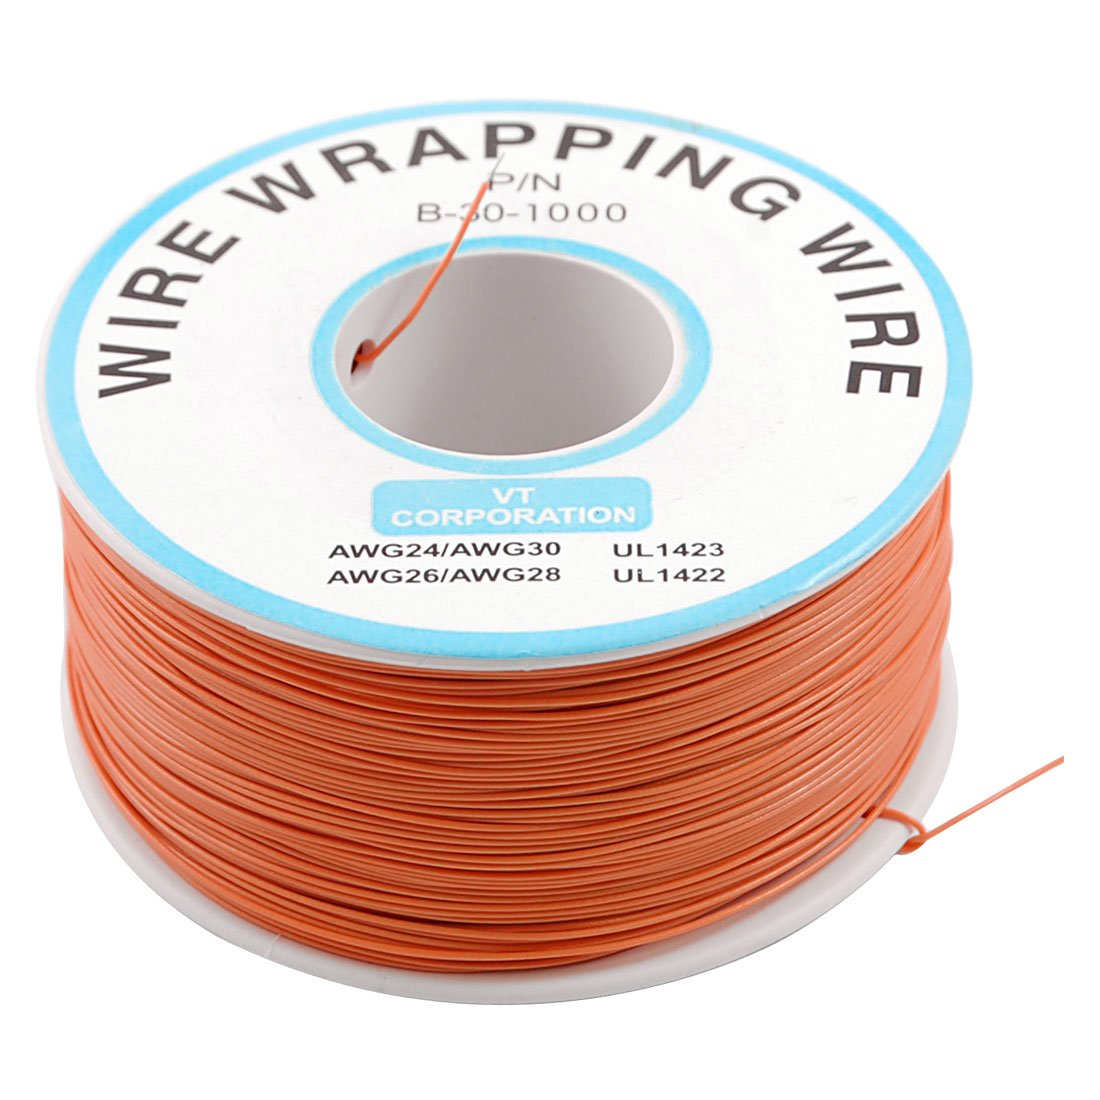 Promotion! PCB Solder Orange Flexible 0.5mm Outside Dia 30AWG Wire Wrapping Wrap 1000Ft white flexible 30awg wire cable high temperature resistant wrapping wrap 315m